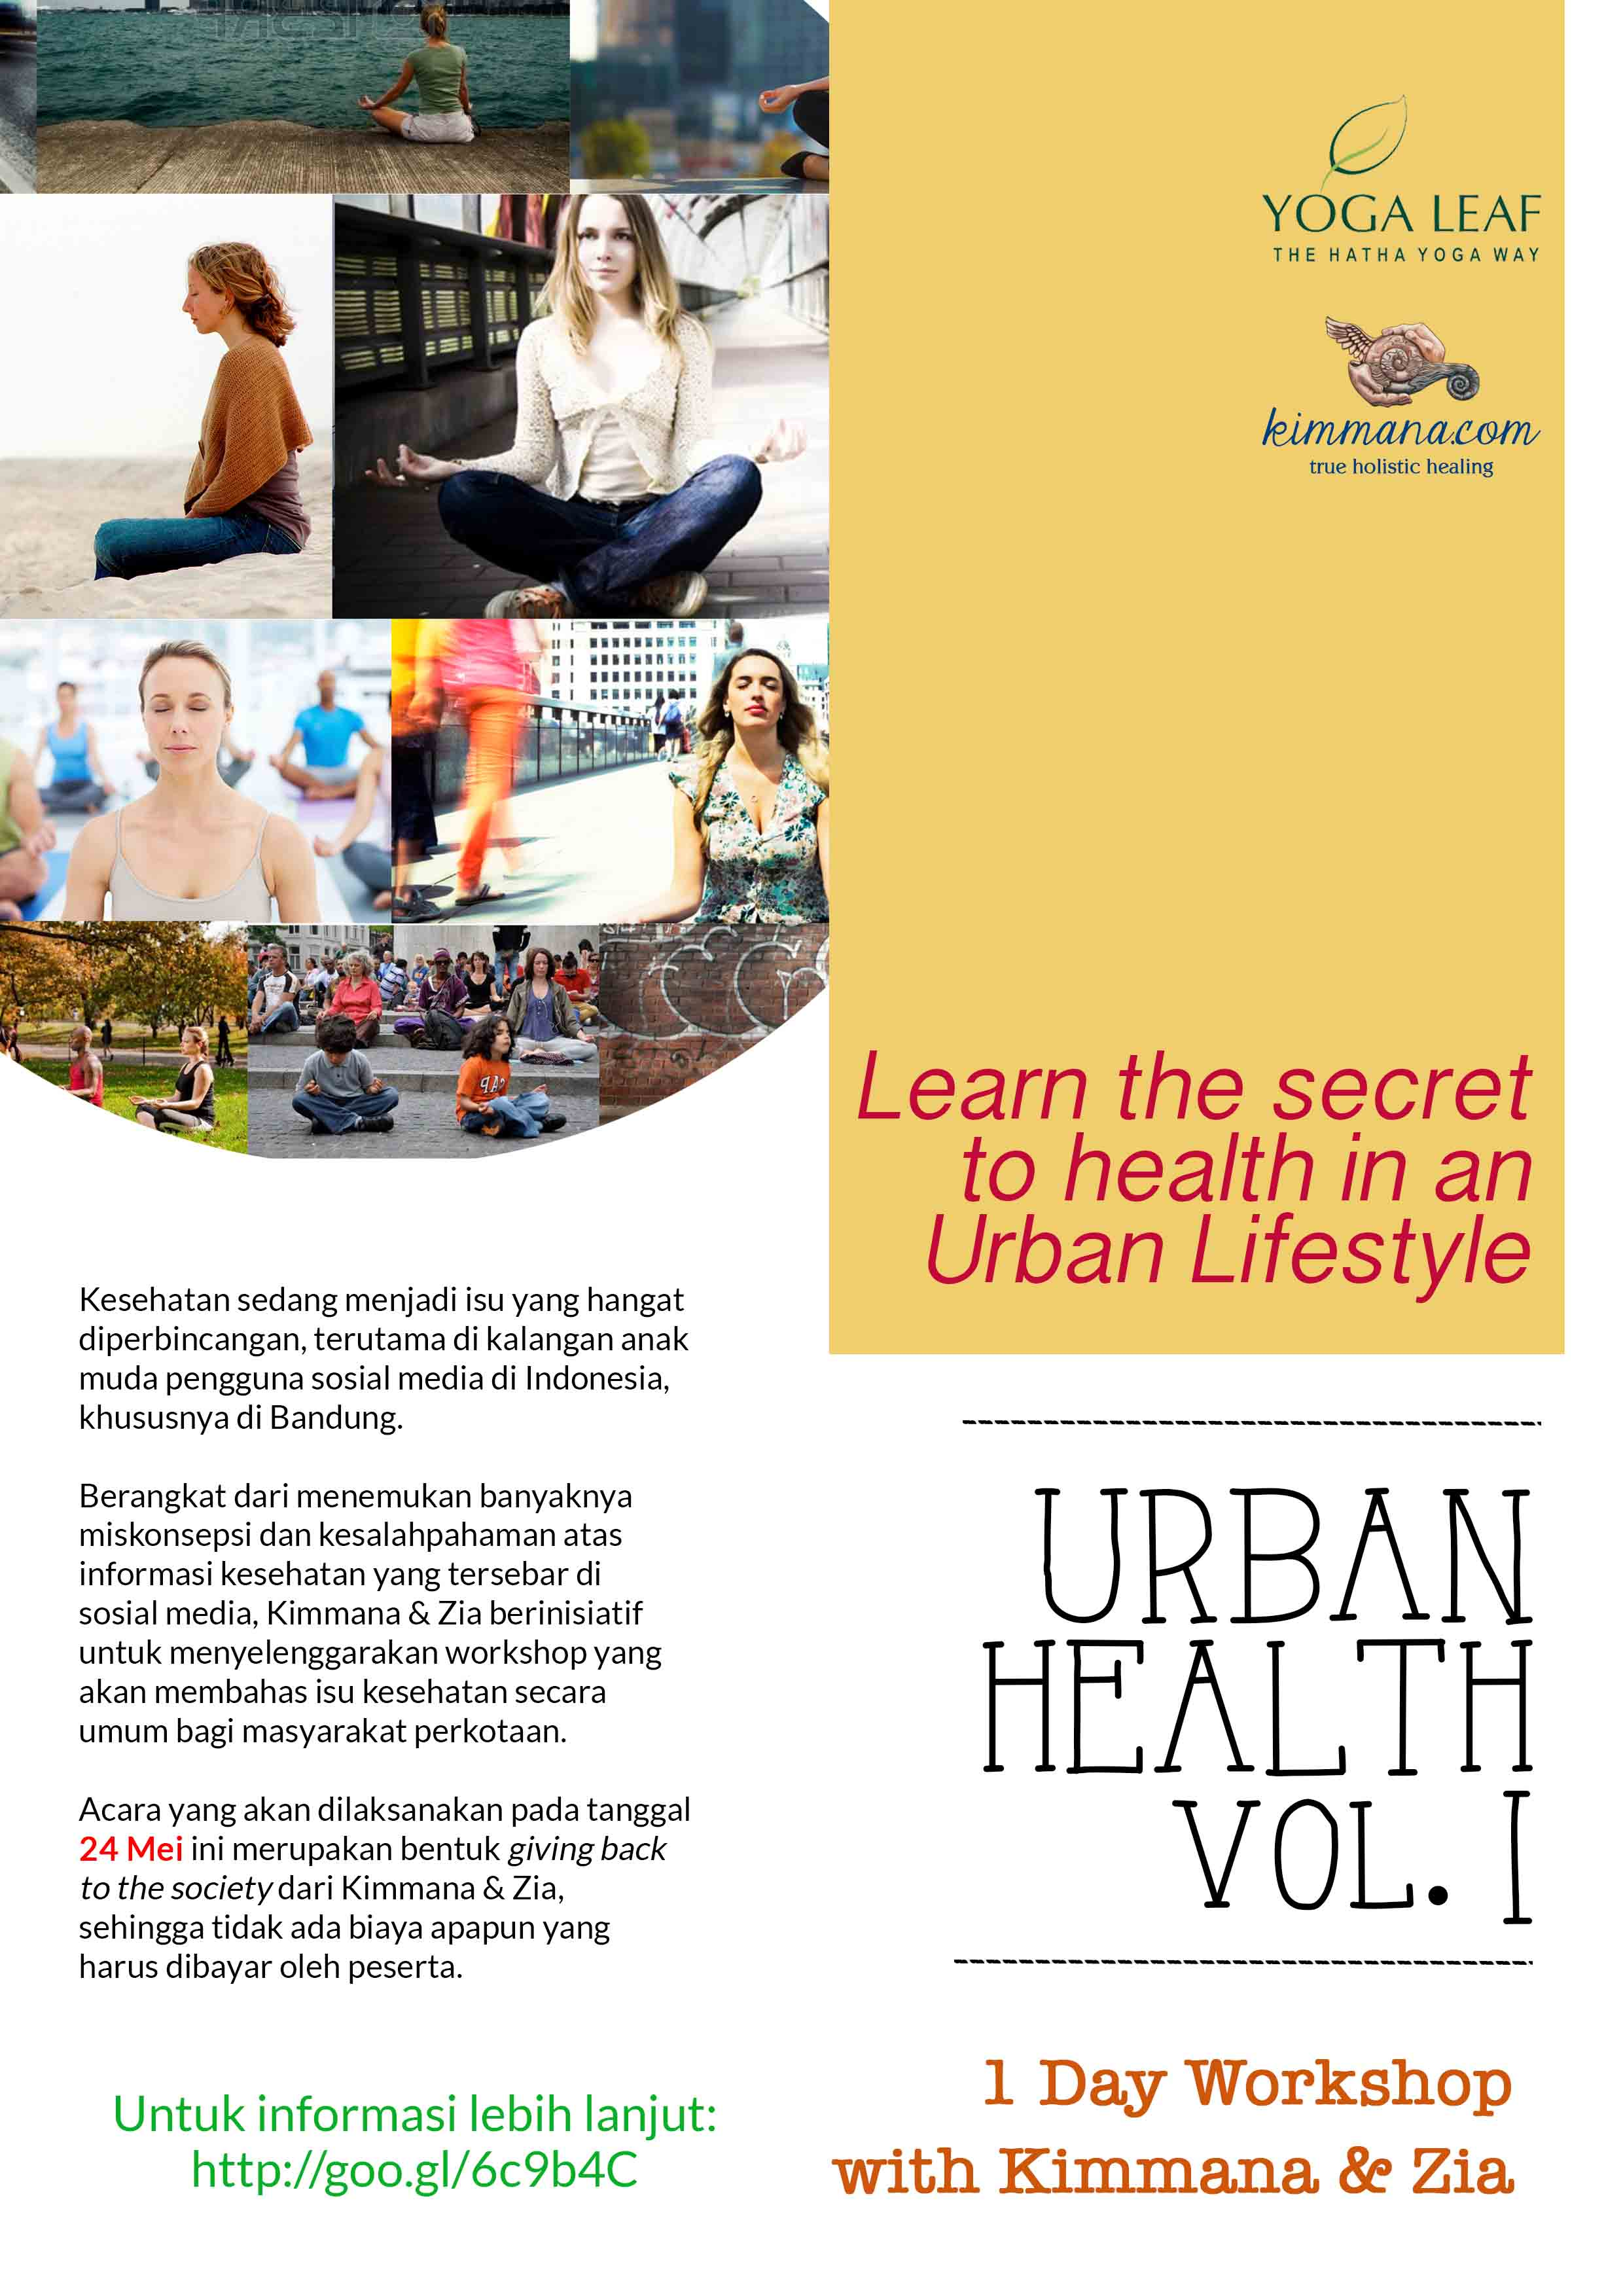 Urban Health Vol.1 – One Day Workshop by Kimmana & Zia